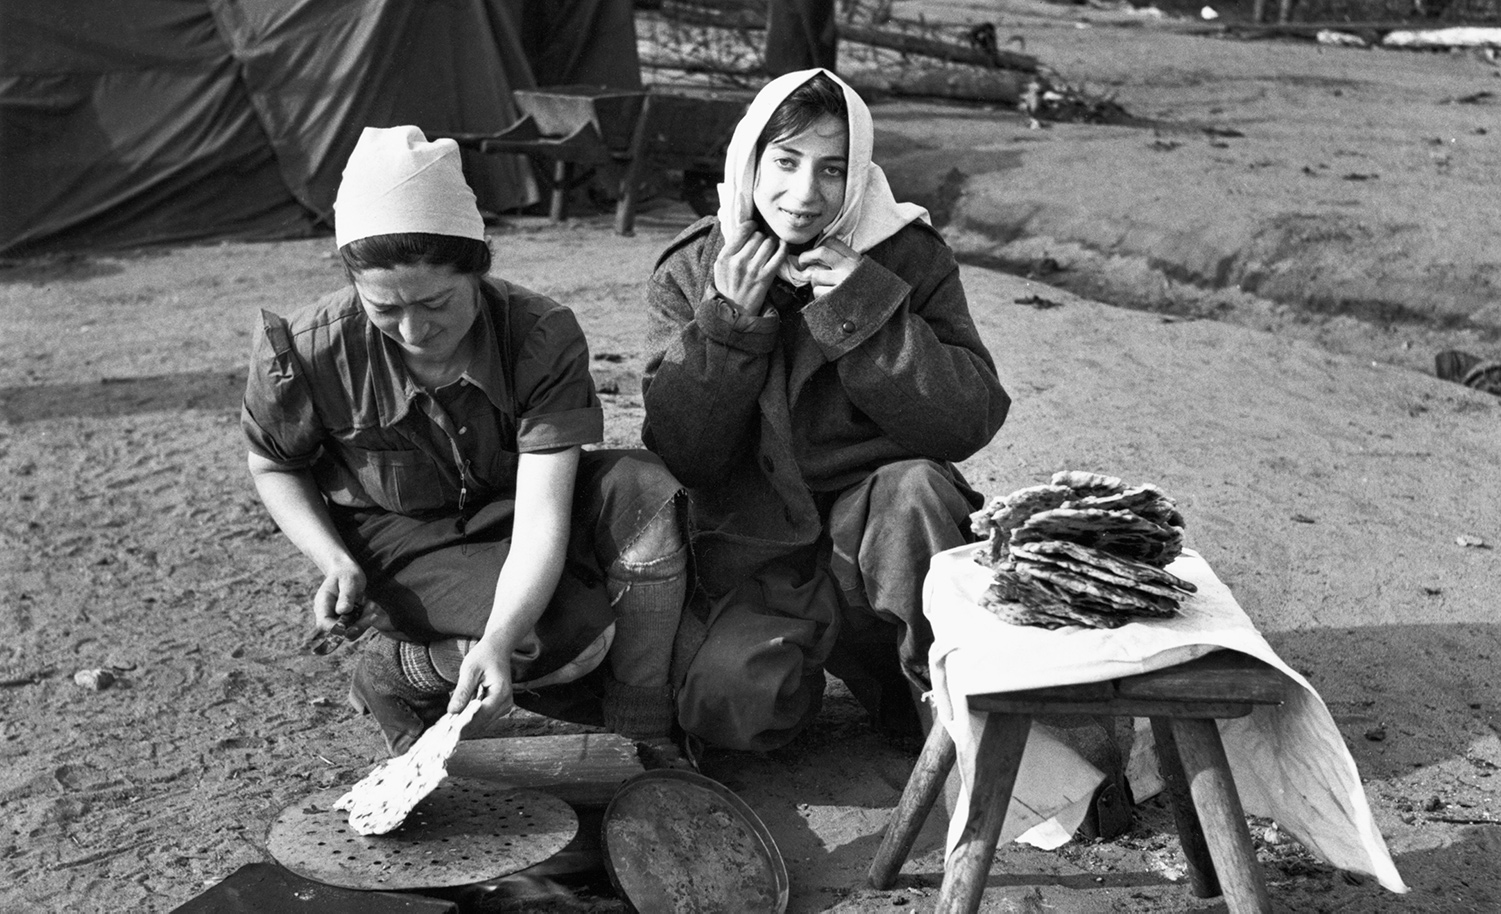 Women cooking flatbread at the liberated Bergen-Belsen concentration camp in 1945. George Rodger/The LIFE Picture Collection via Getty Images.